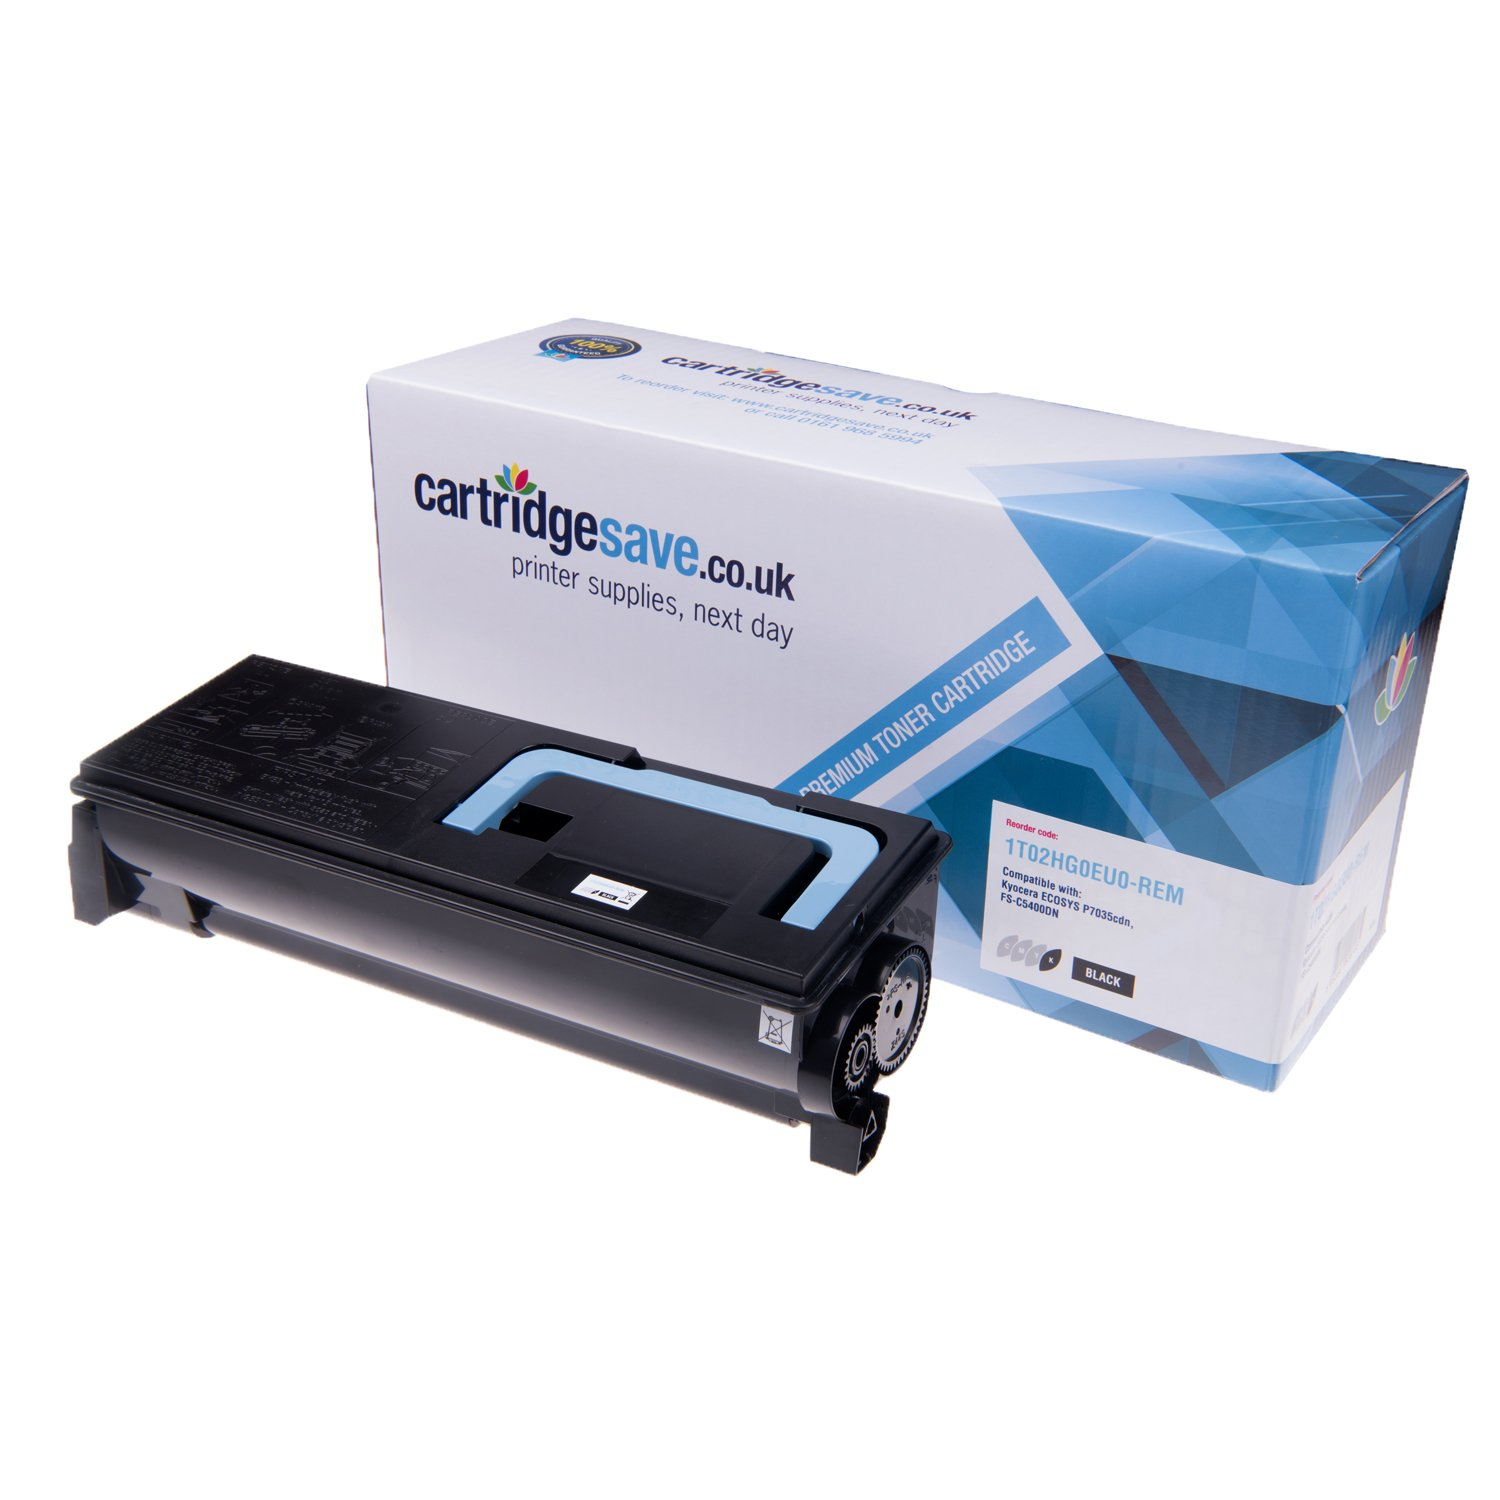 Compatible Black Kyocera TK-570K Toner Cartridge - (Replaces Kyocera 1T02HG0EU0 Laser Printer Cartridge)